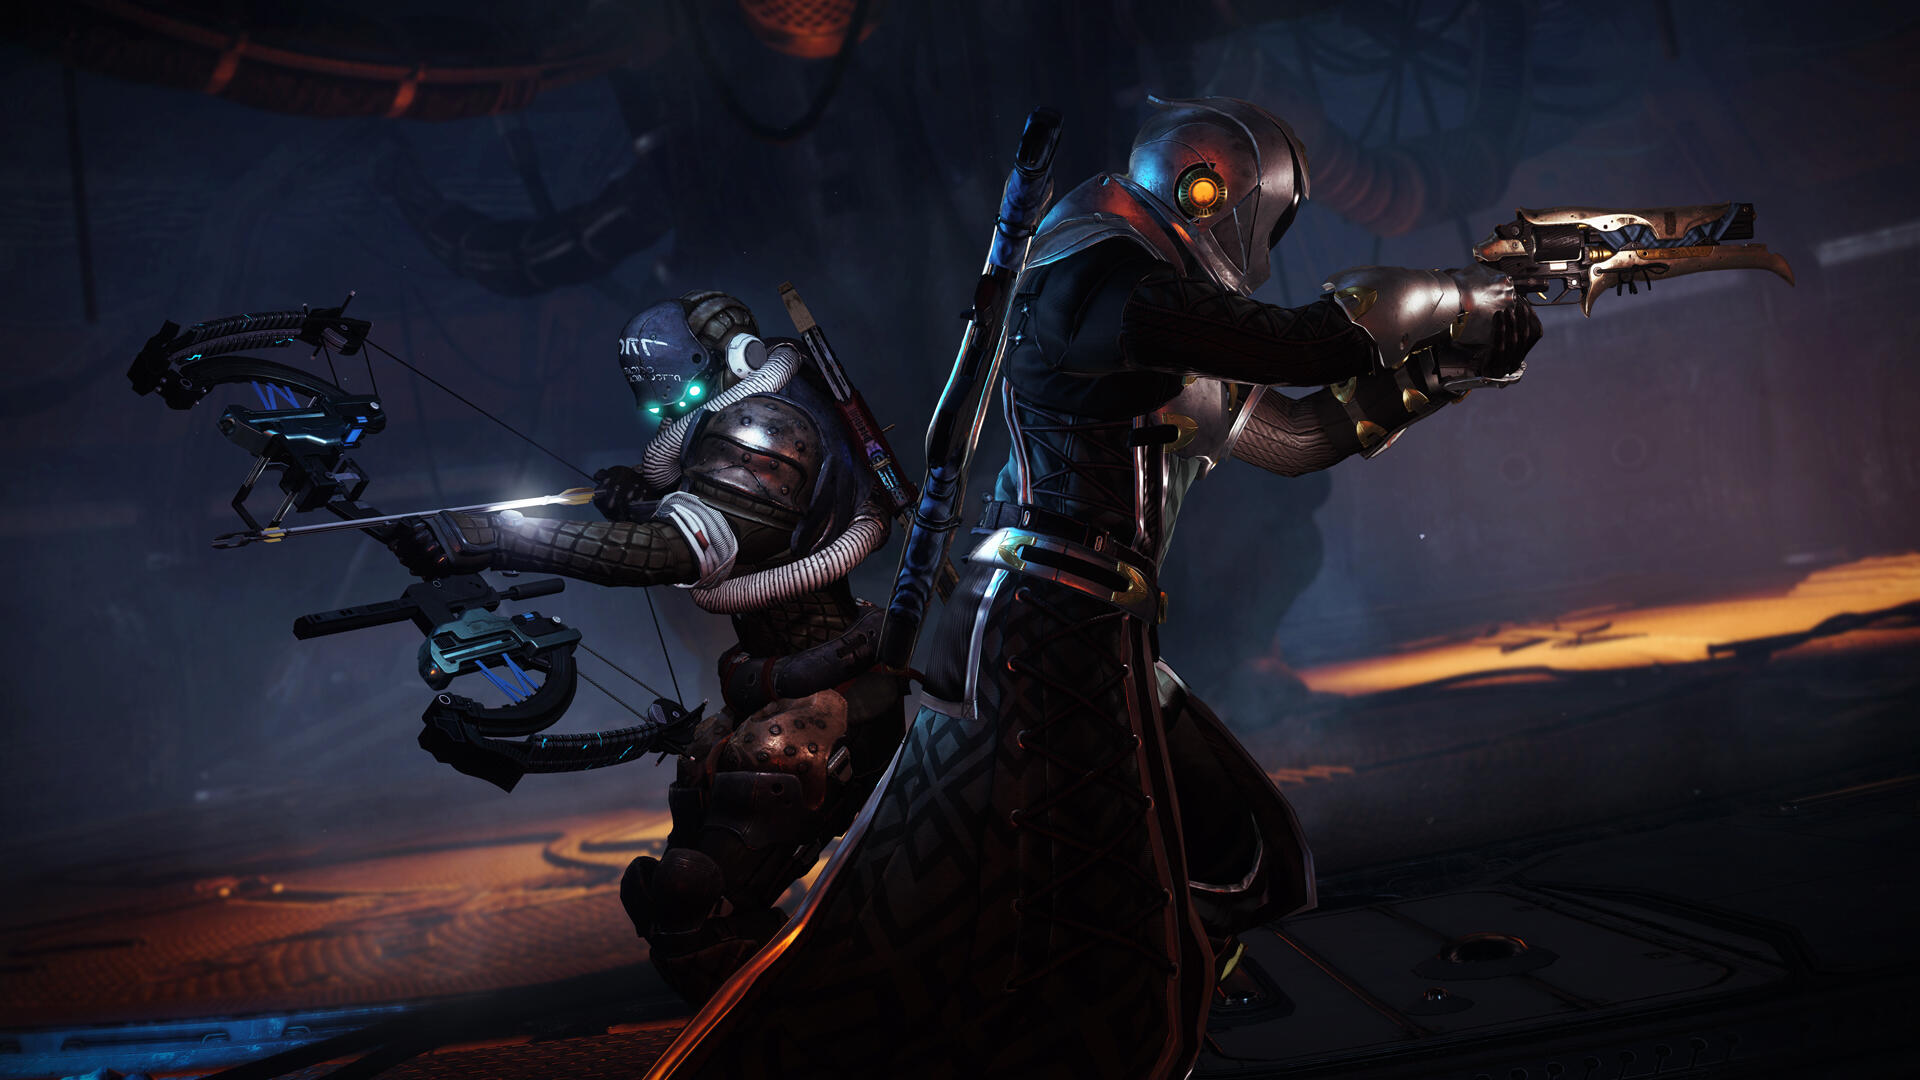 Bungie Promised to Make Destiny 2 Players More Powerful. Now It's Nerfing the Most Popular Weapons